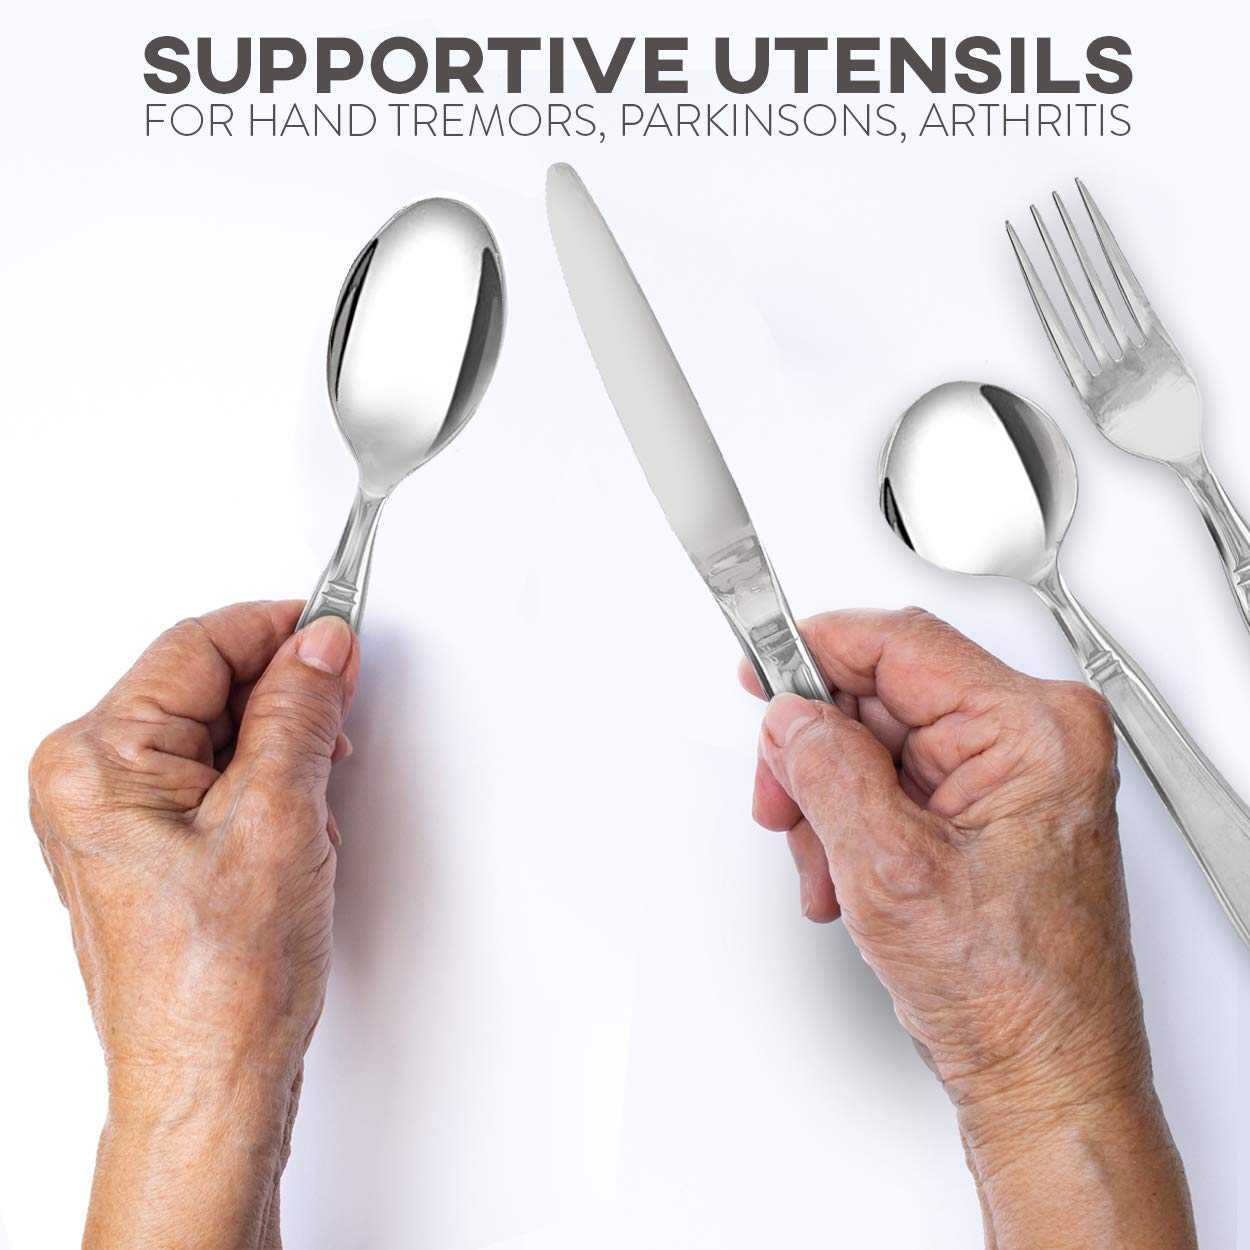 Linelax Weighted Utensils for Tremors and Parkinsons Patients - Heavy Weight Steel Silverware Set of Knife, Fork, Teaspoon and Soup Spoon - Adaptive Eating Flatware Helps Hand Tremor, Parkinson, Arthr by Linelax (Image #6)